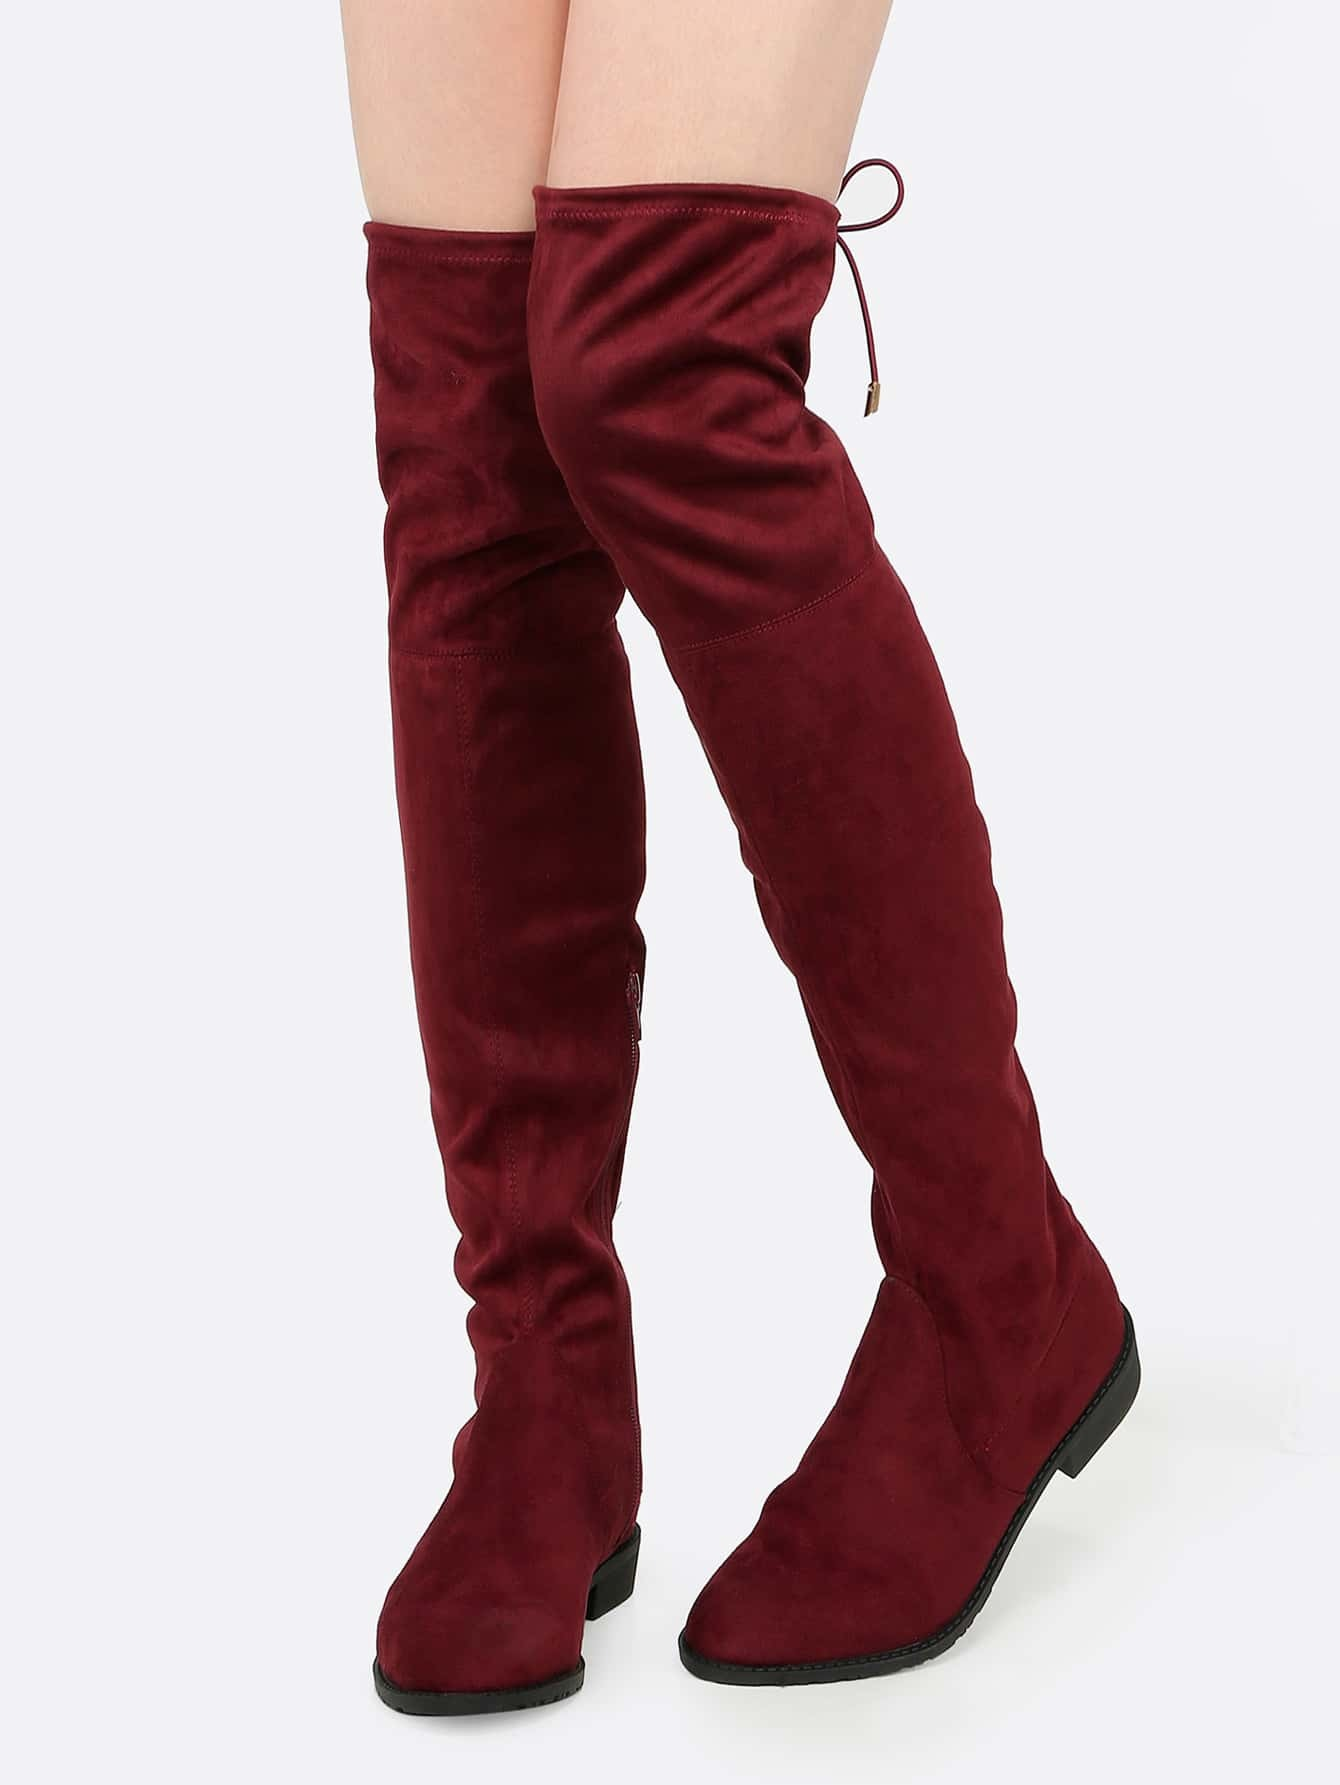 Faux Suede Thigh High Flat Boots BORDEAUX -SheIn(Sheinside)